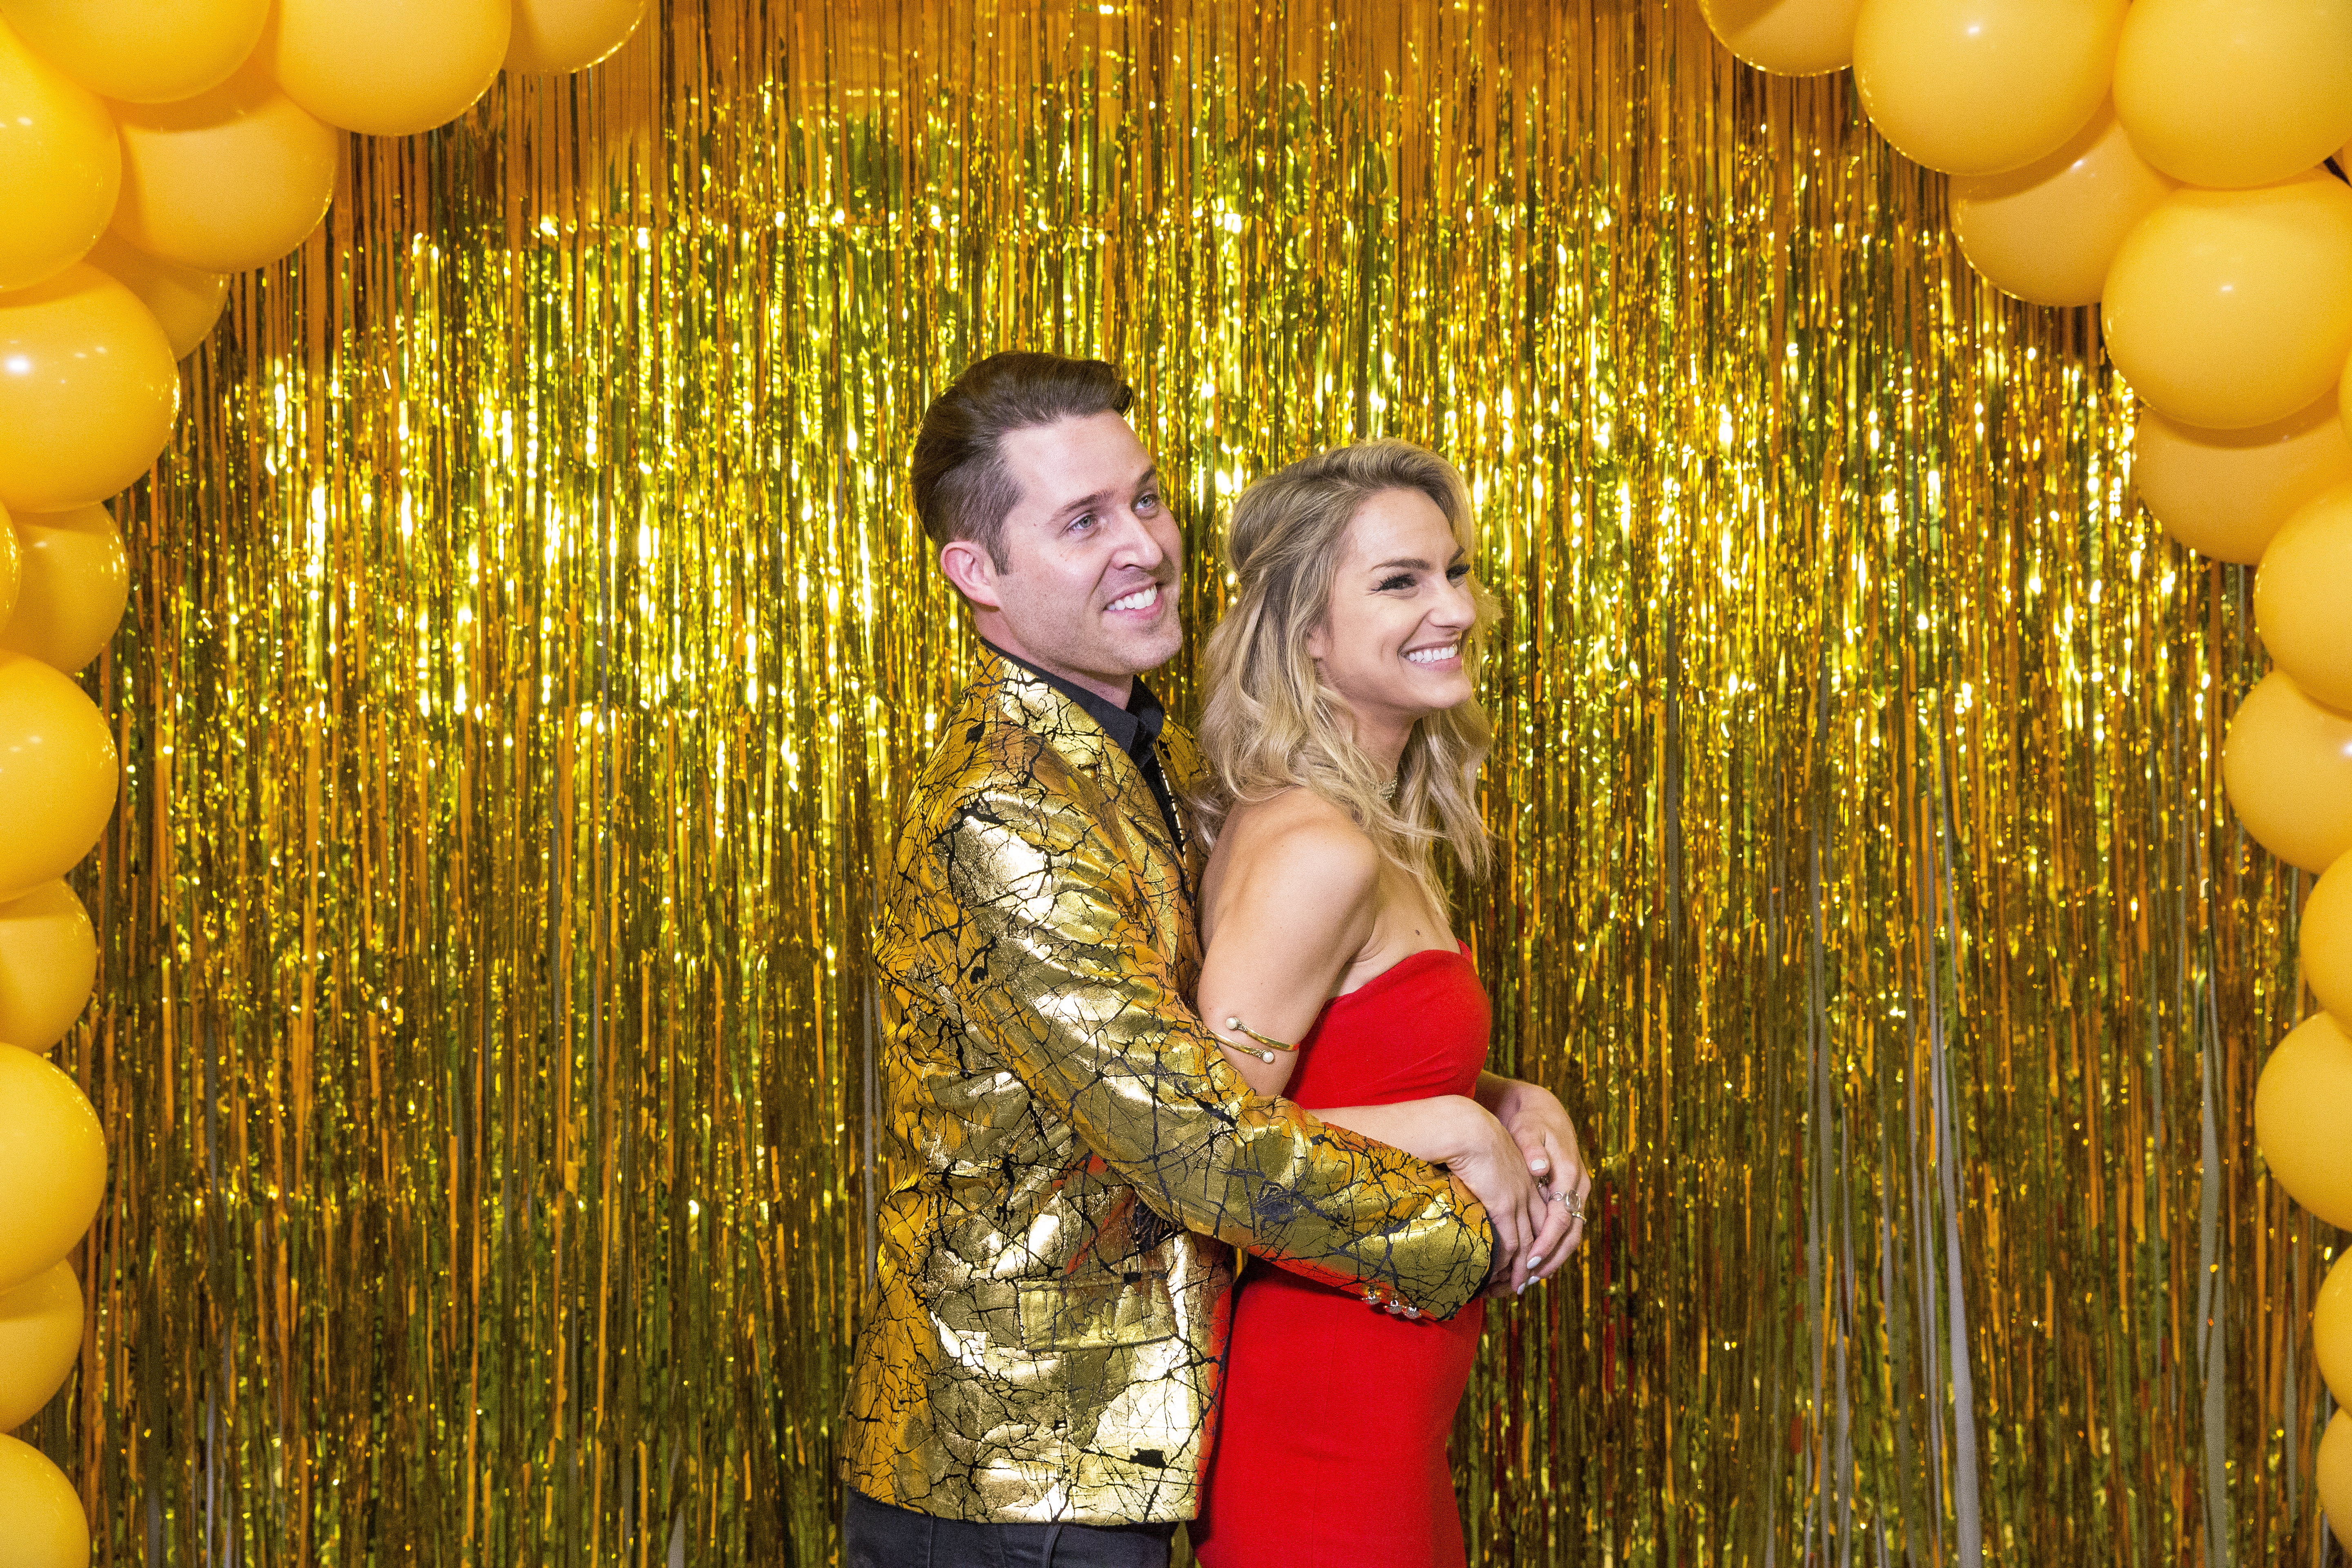 twix prom hosts photo booth